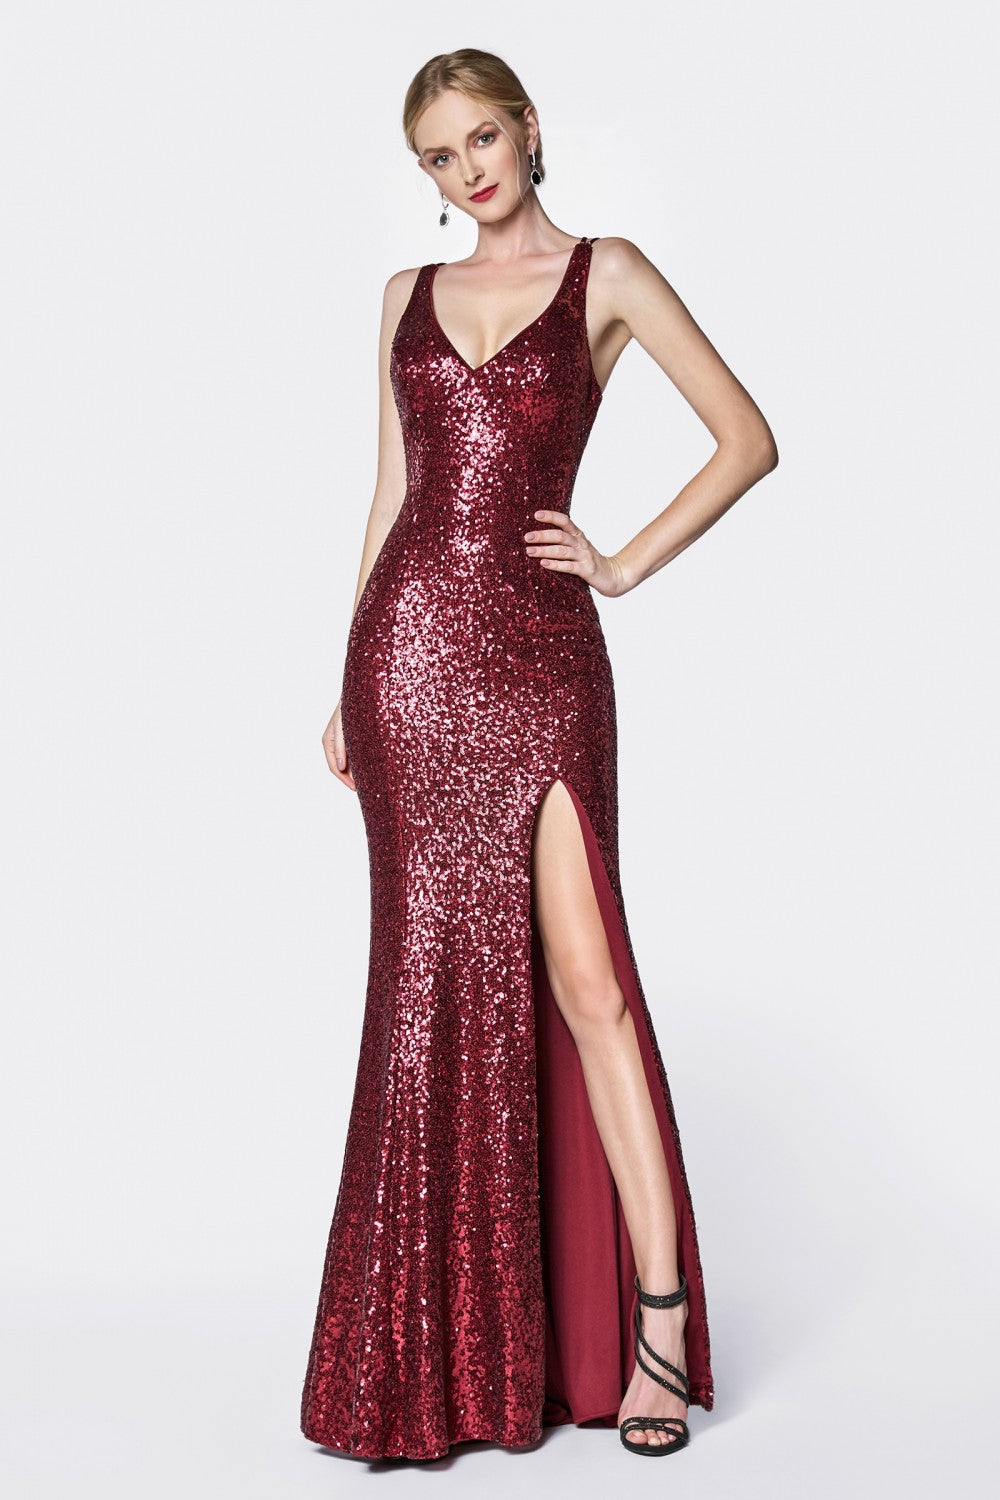 Fitted V-Neck Sequin Gown With Leg Slit, Criss Cross Back And Detachable Cape